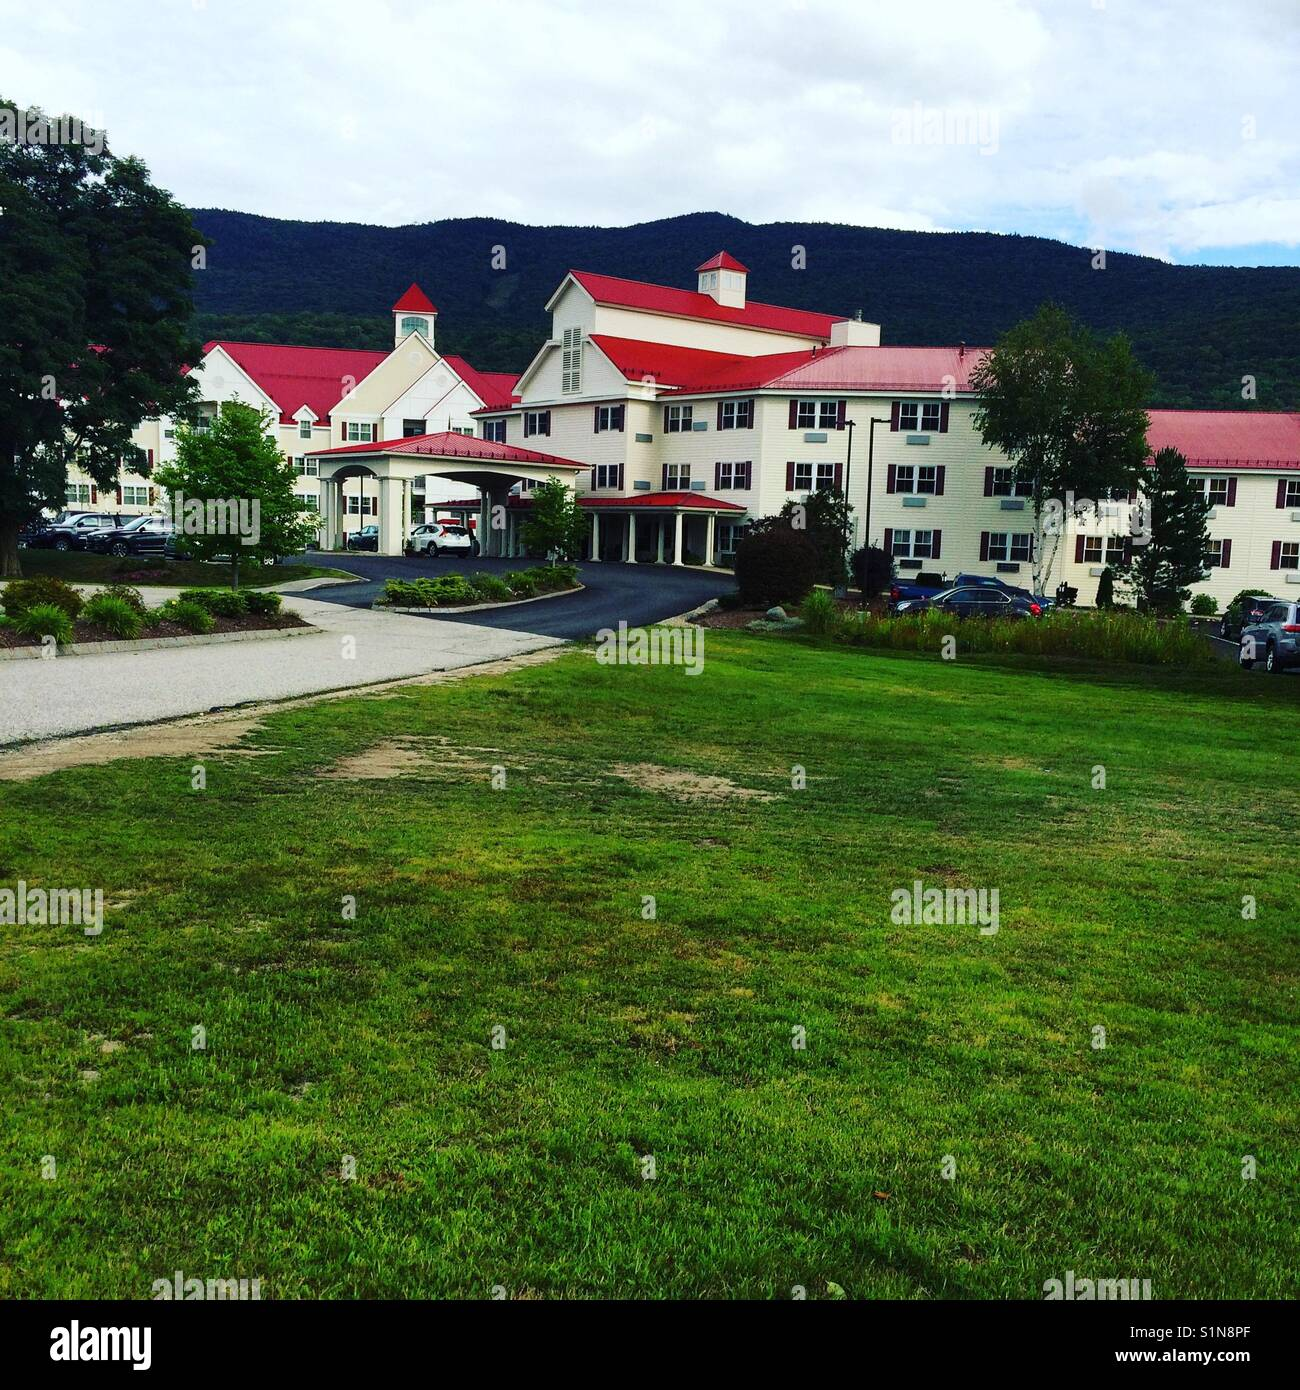 south mountain resort, lincoln, new hampshire, united states stock